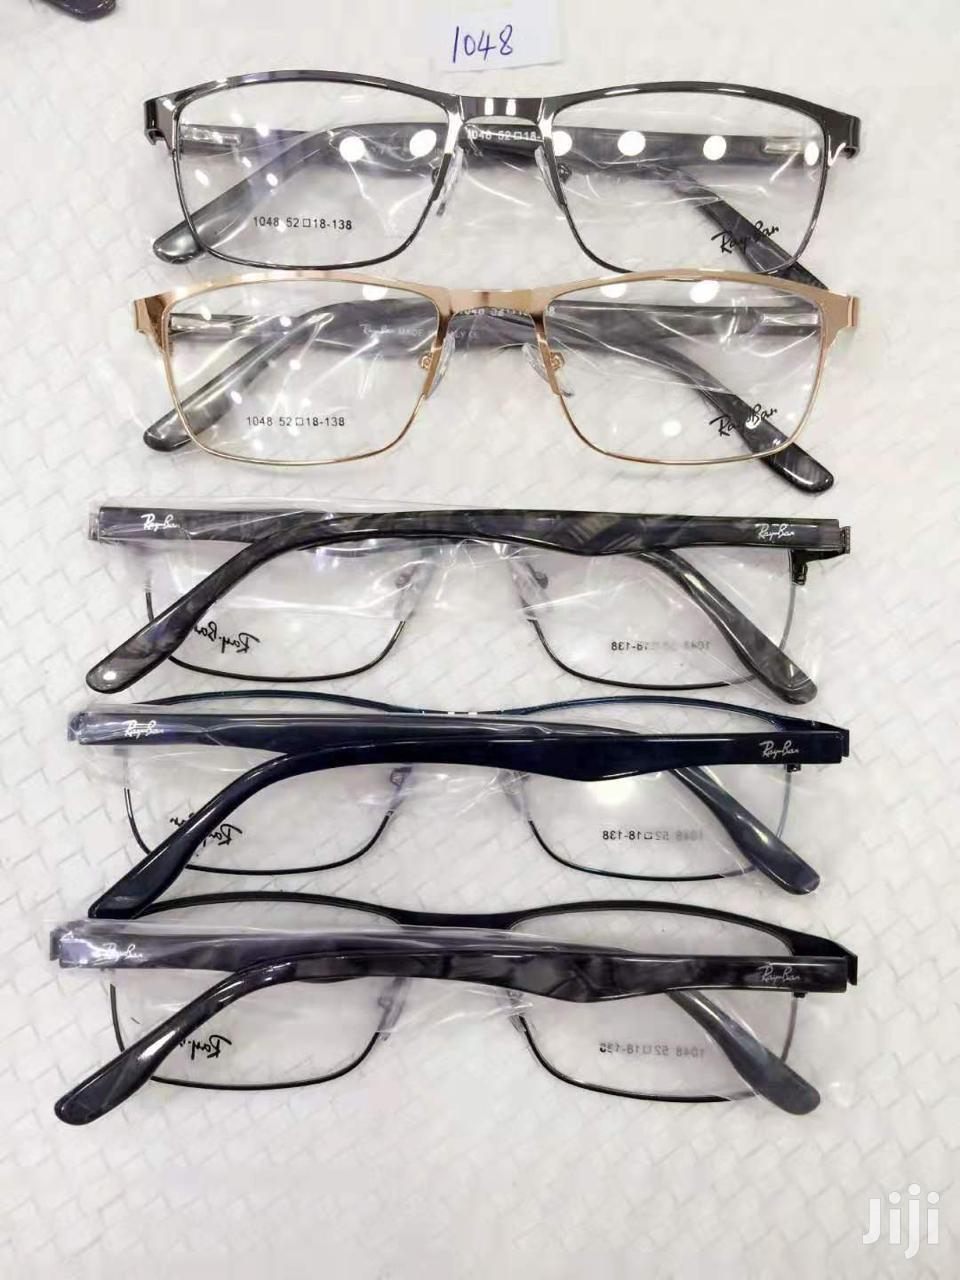 Durable Spects | Tools & Accessories for sale in Nairobi Central, Nairobi, Kenya